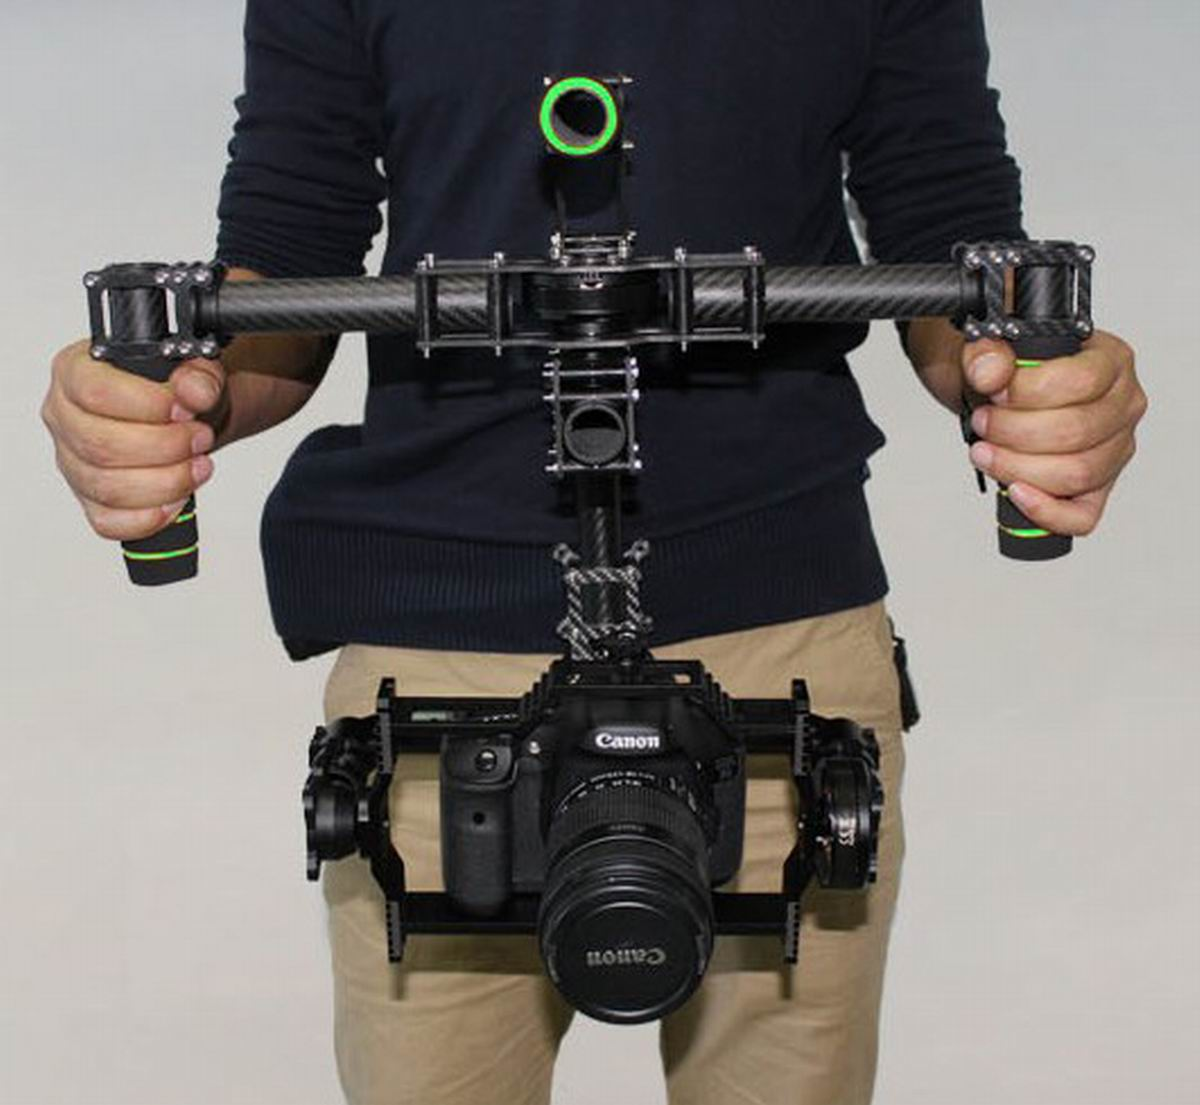 DSLR Handle Camera 3 Axis Brushless Gimbal Carbon Mount + 32 bit AlexMos Controller + 3 Motor CANON 5D MarkII D900 etc. цена